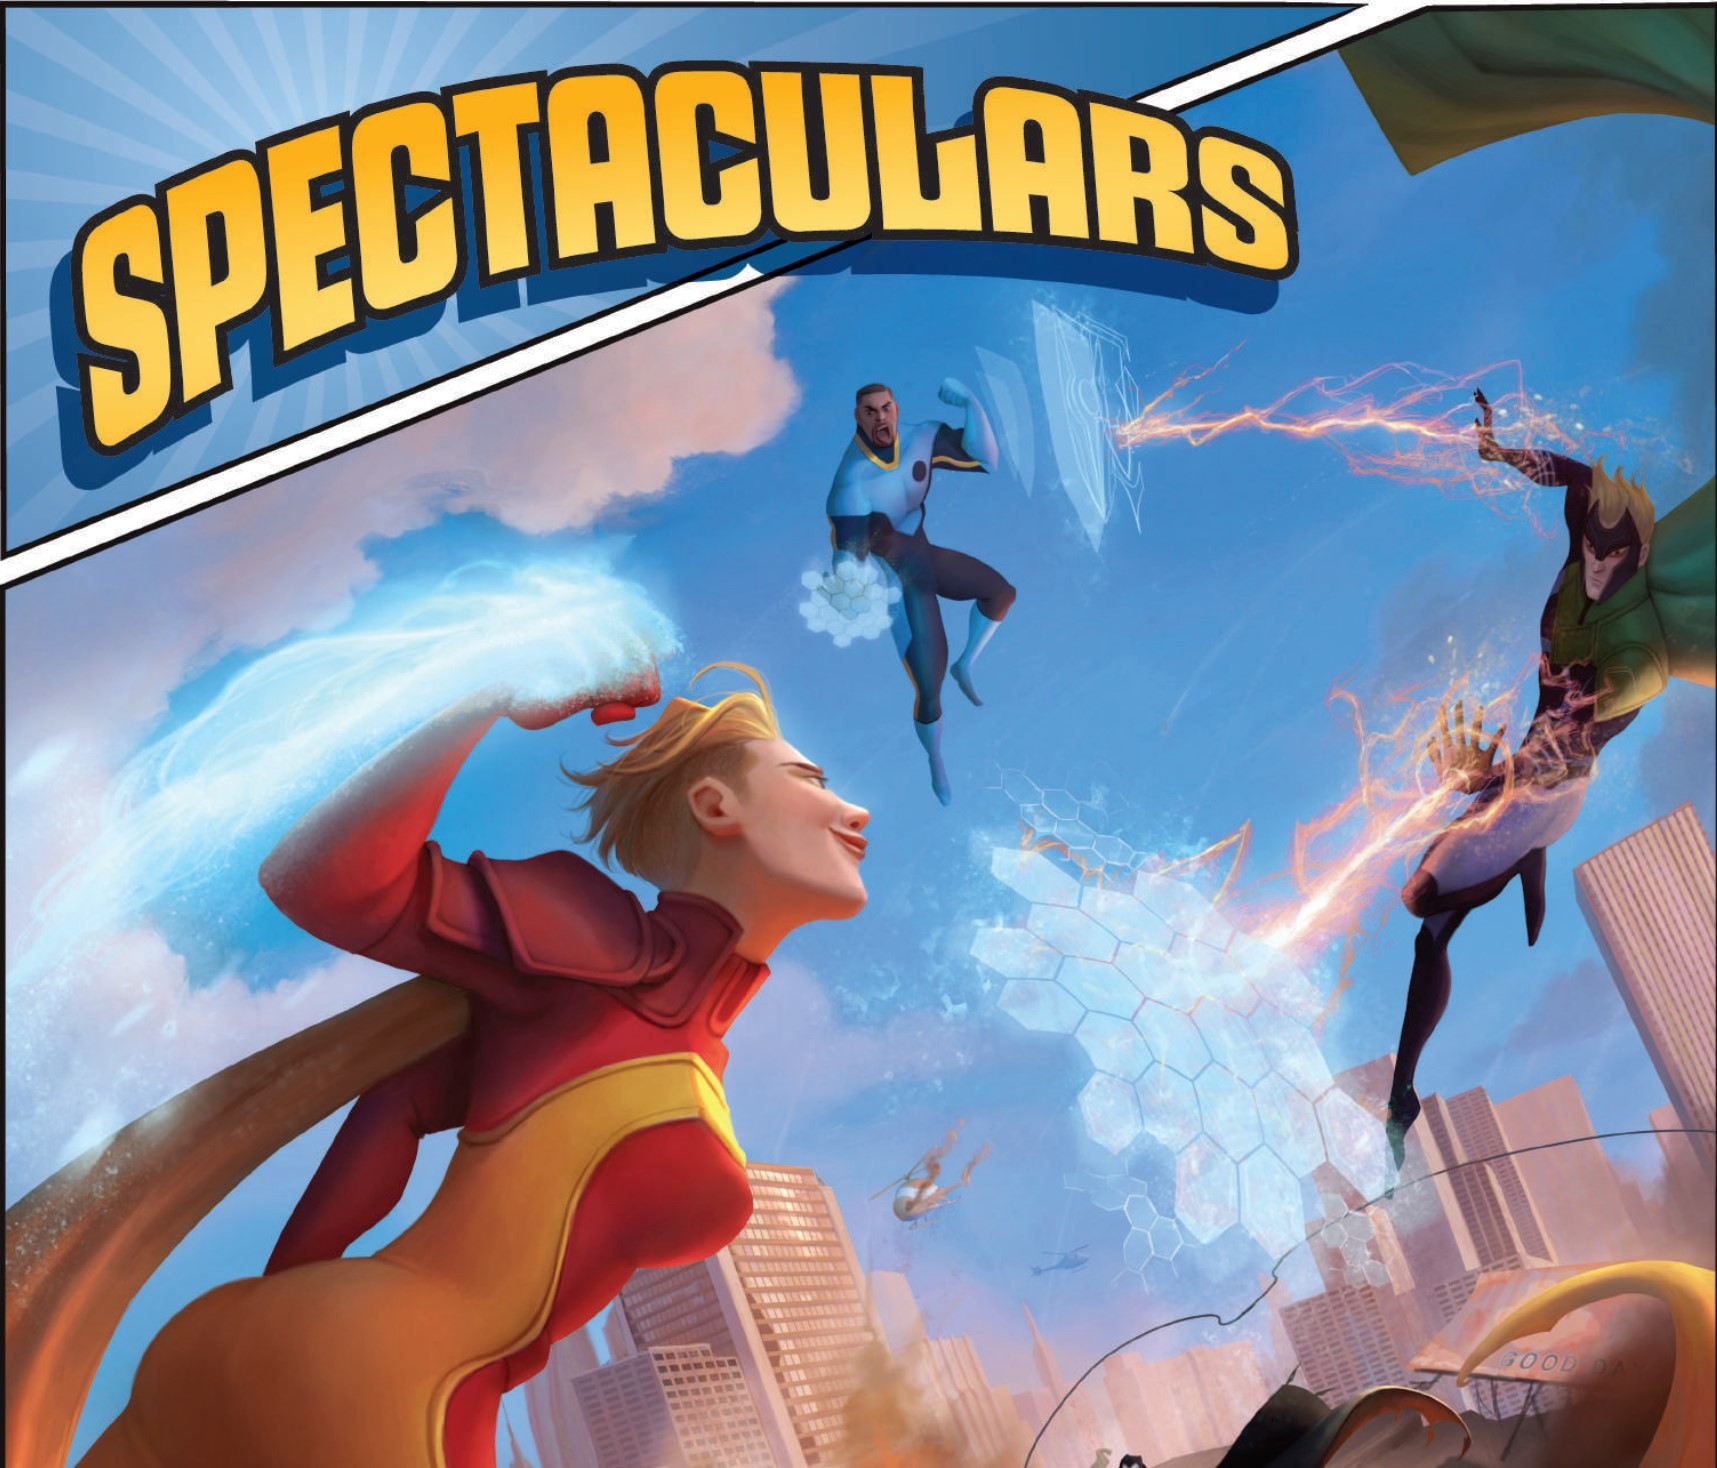 Two heroes fly over a city, flanking a supervillain and deflecting their energy attacks with force fields.